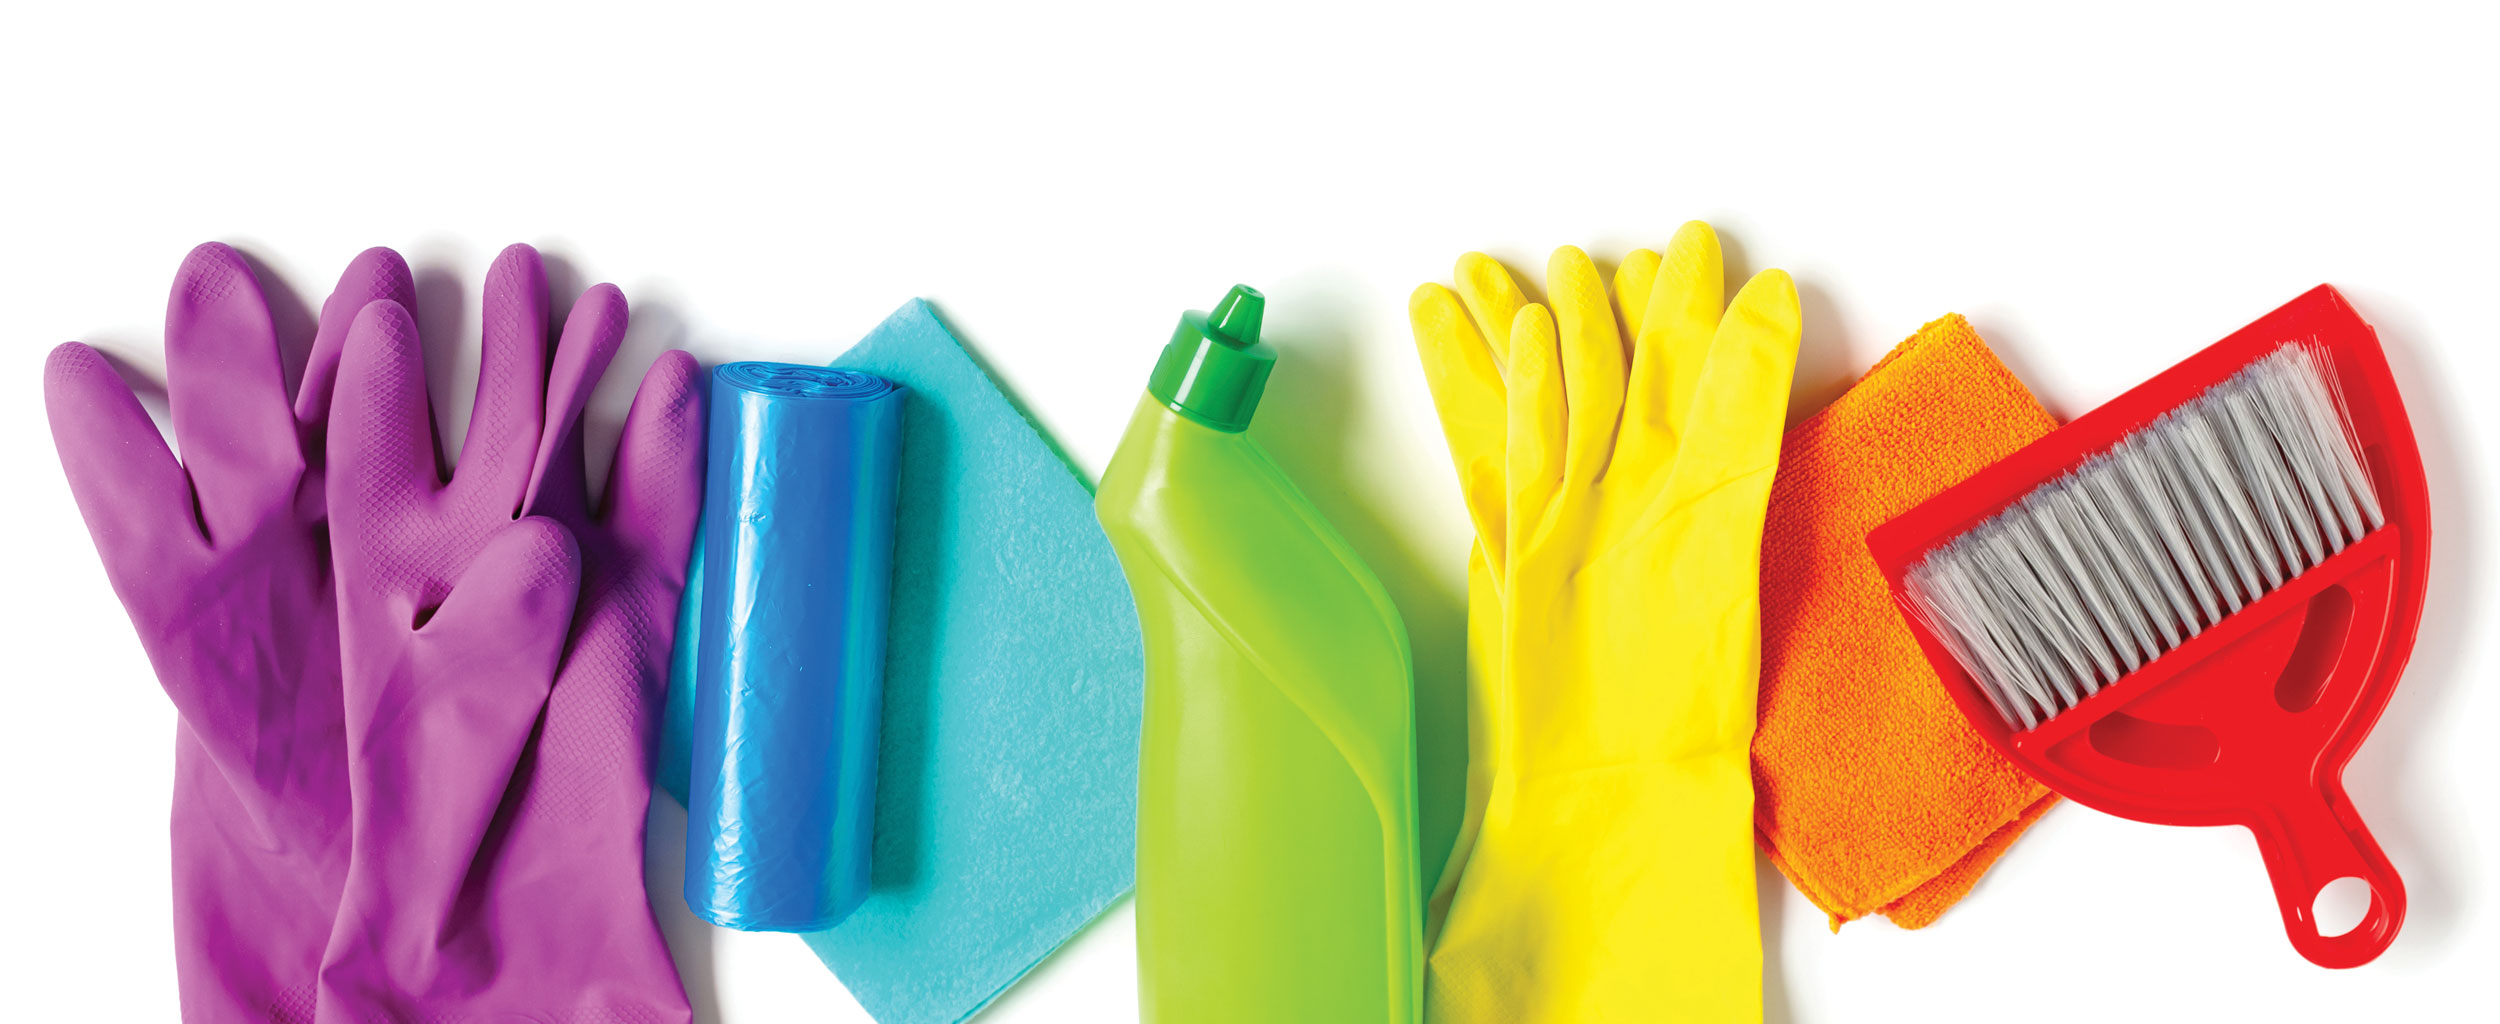 Colourful cleaning supplies